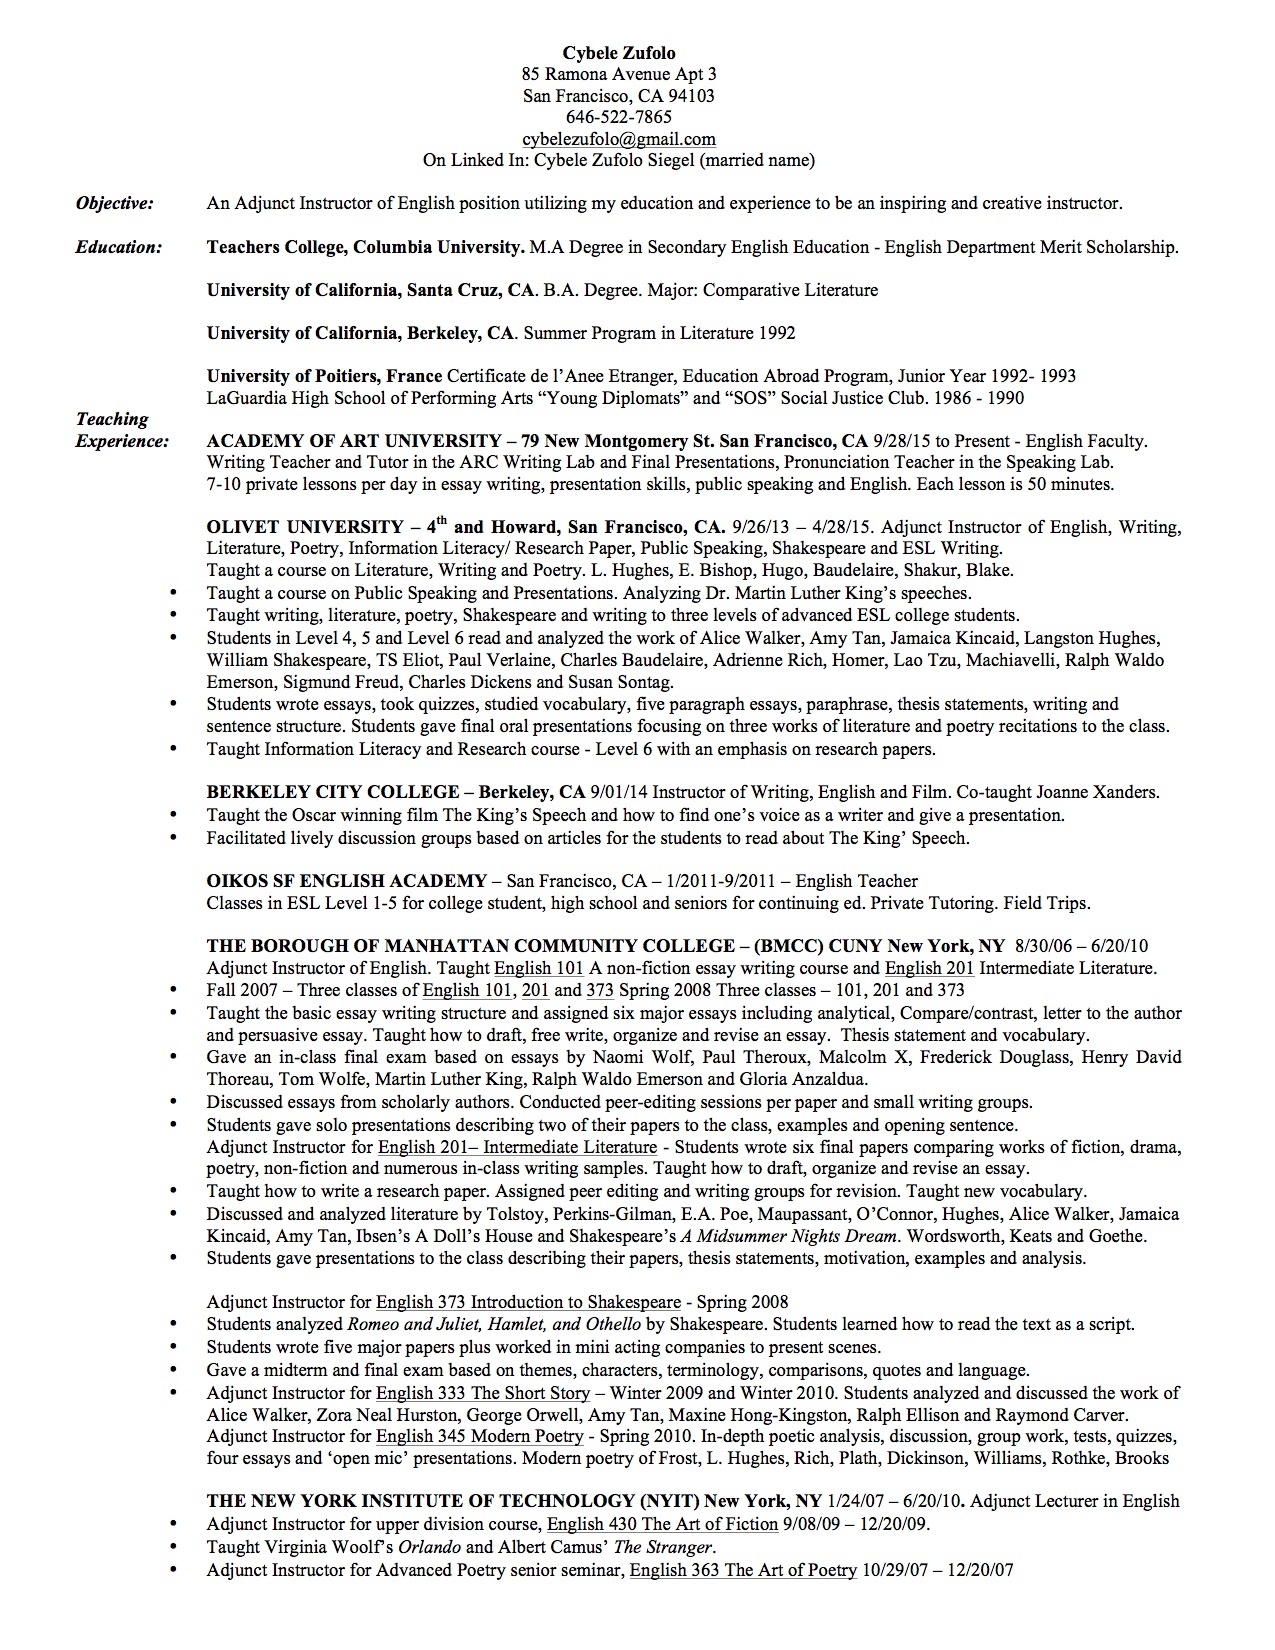 Resume - Teaching Pg1